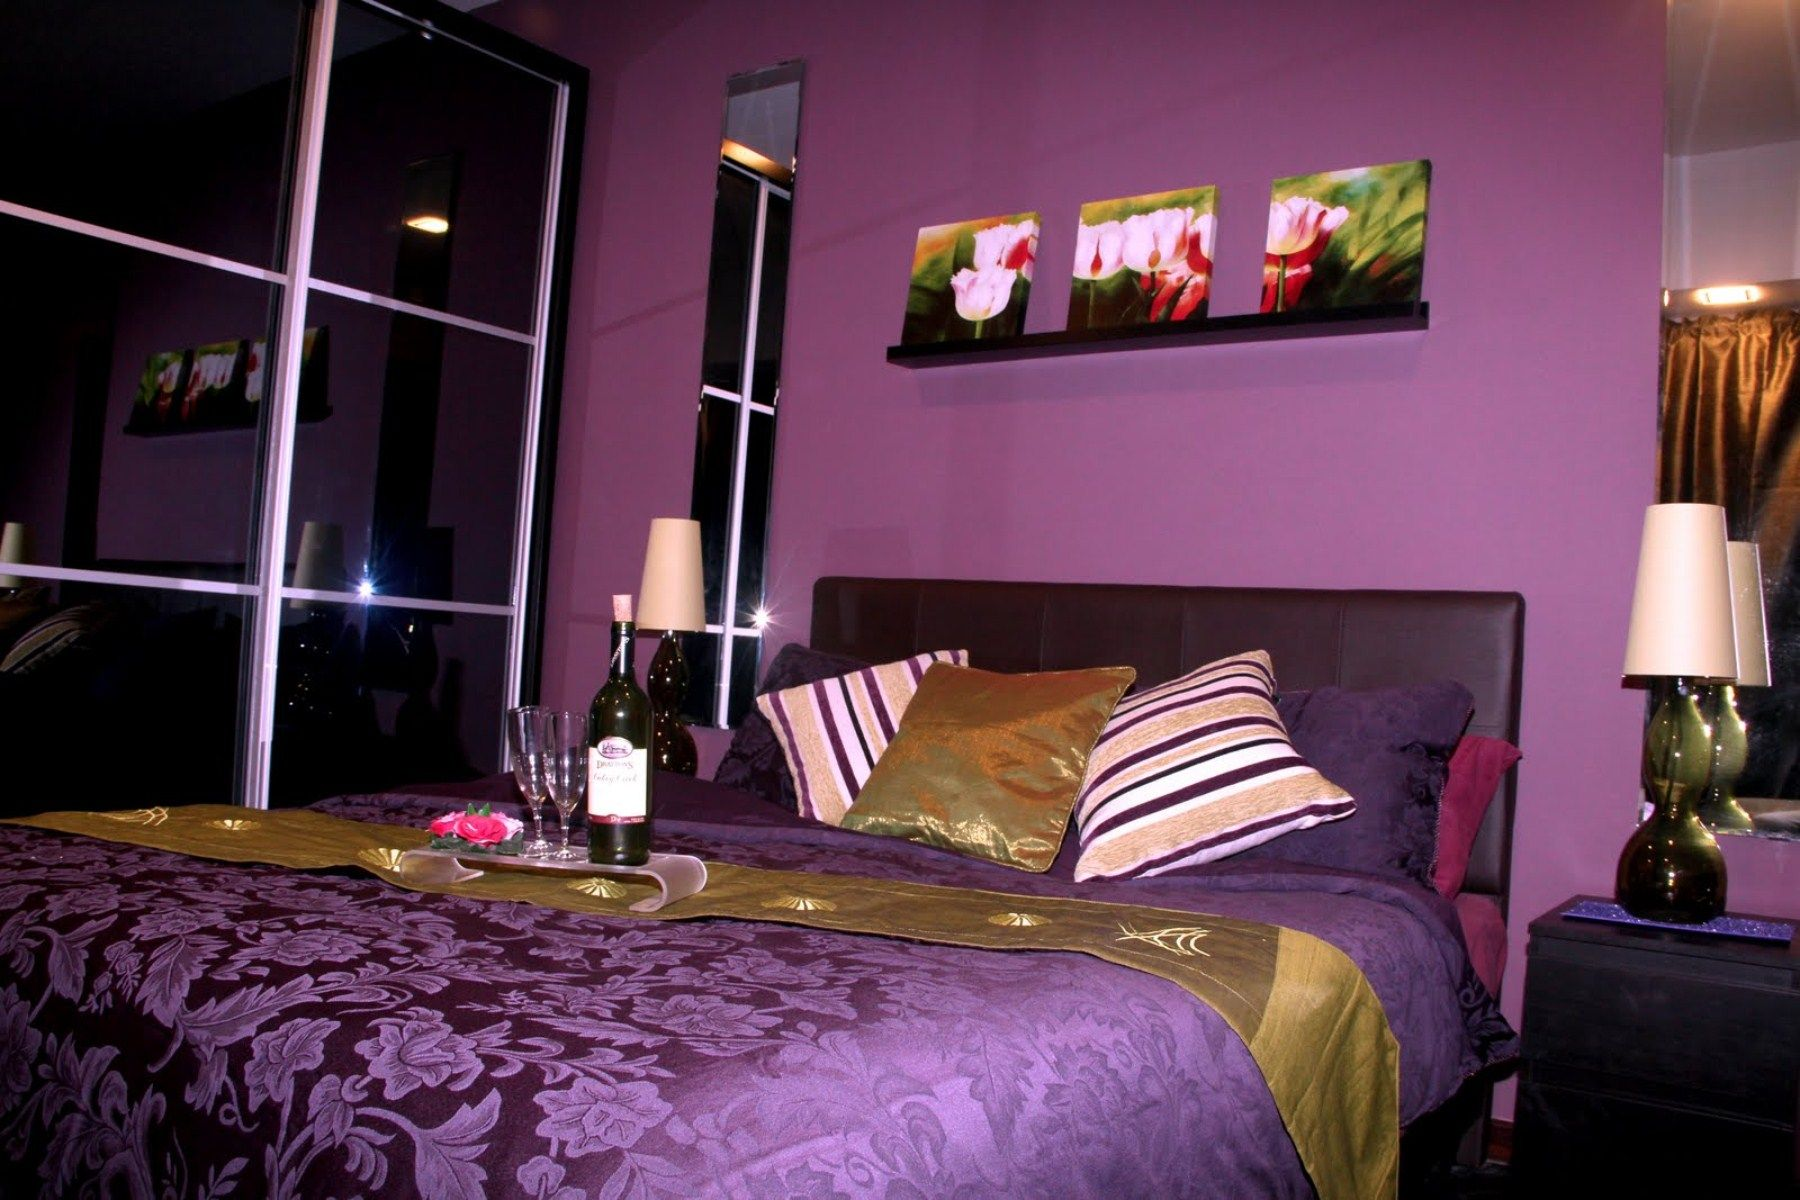 Bedroom Romantic Purple Bedroom Ideas For Valentine Days With Black